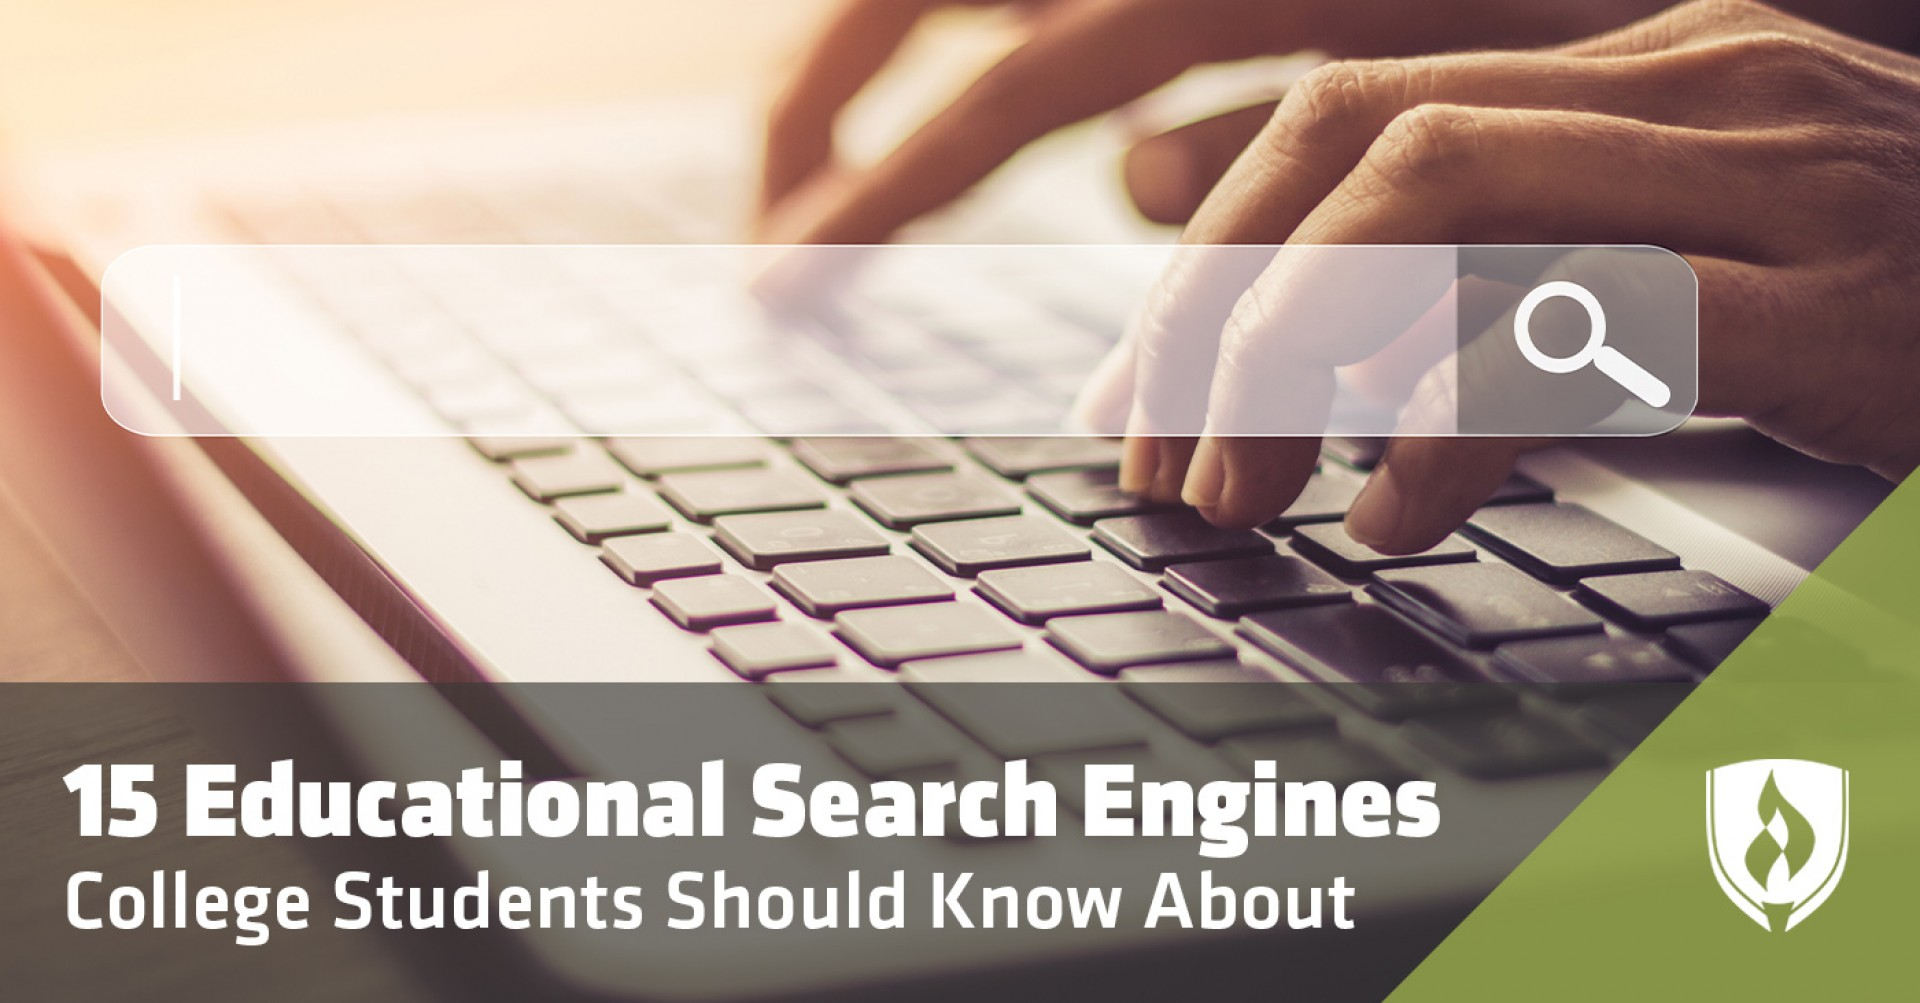 012 Best Research Paper Websites Educational Search Fearsome Top 10 Free 1920